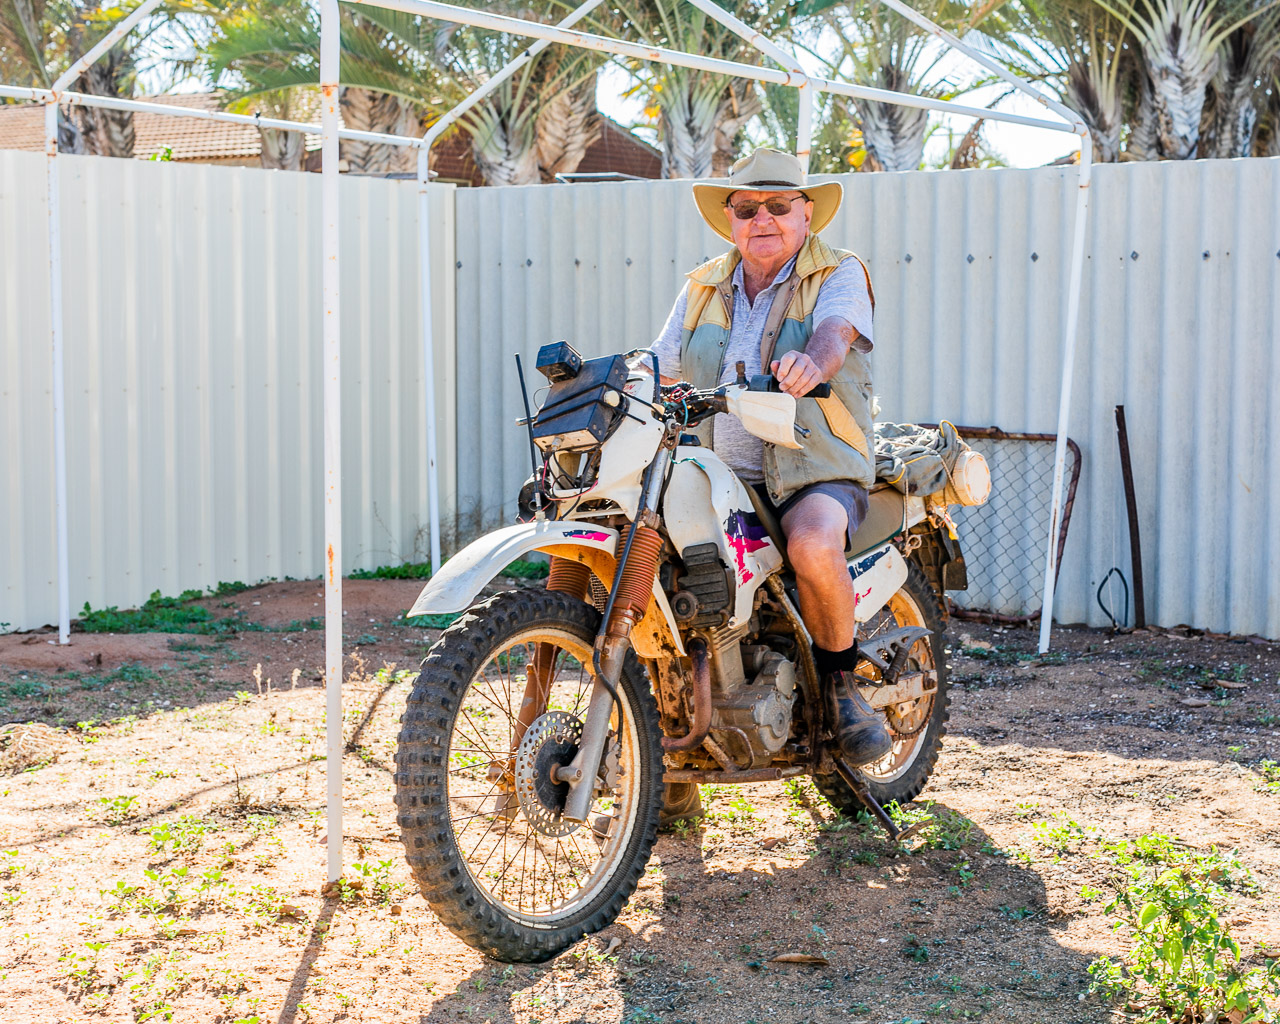 Old roo shooter on a motorbike